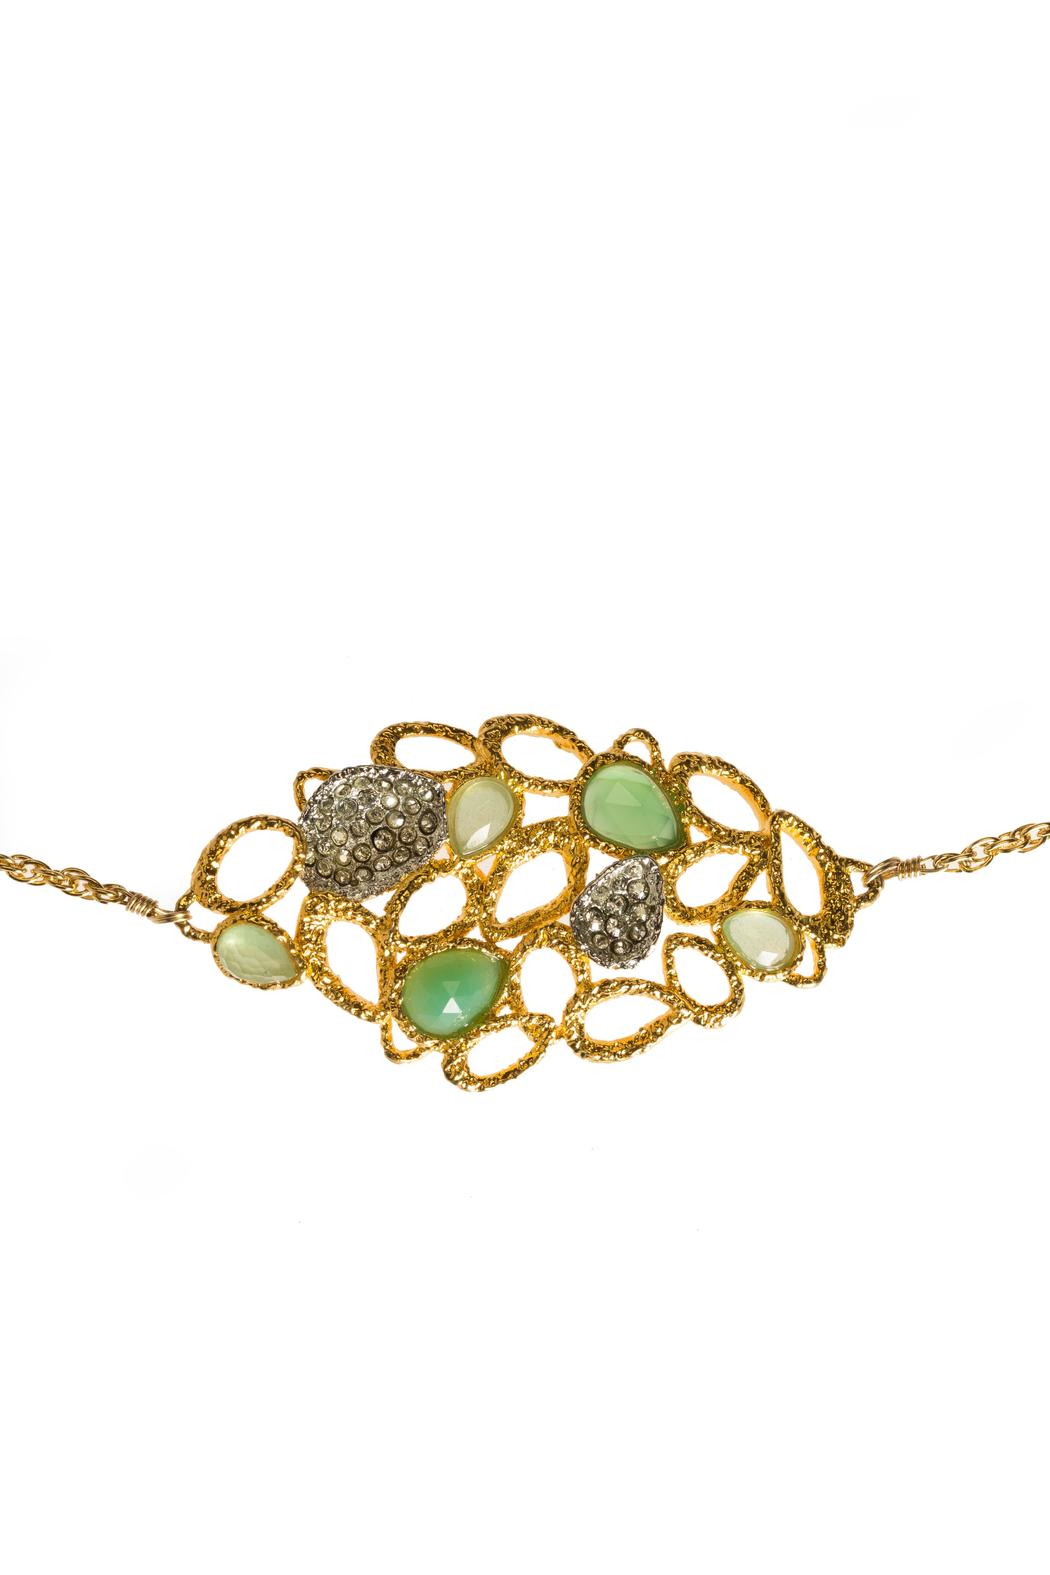 Alexis Bittar Chalcedony Labradorite Necklace - Front Full Image